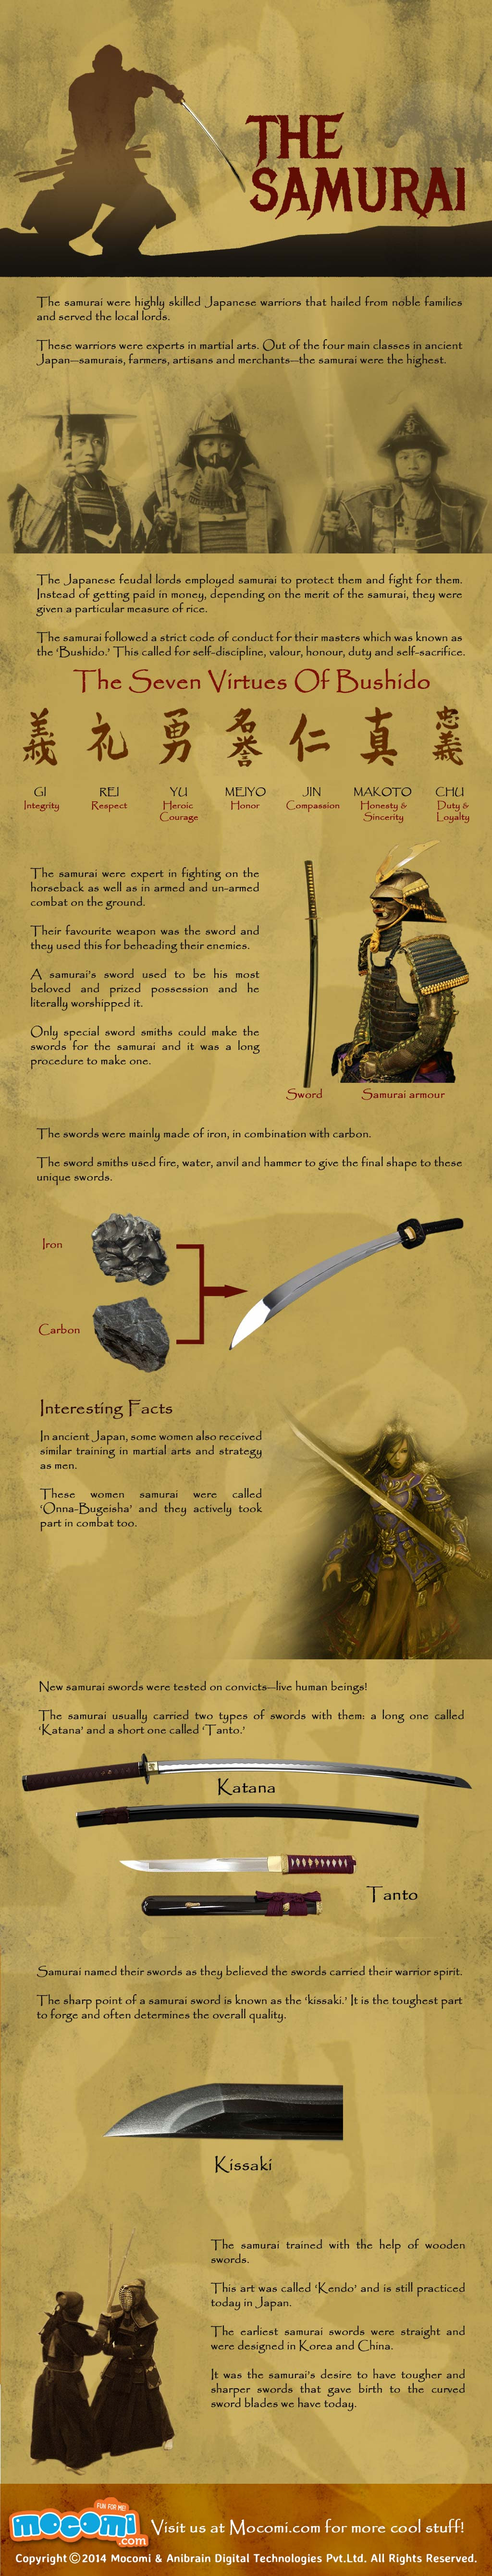 Infographic: The Samurai